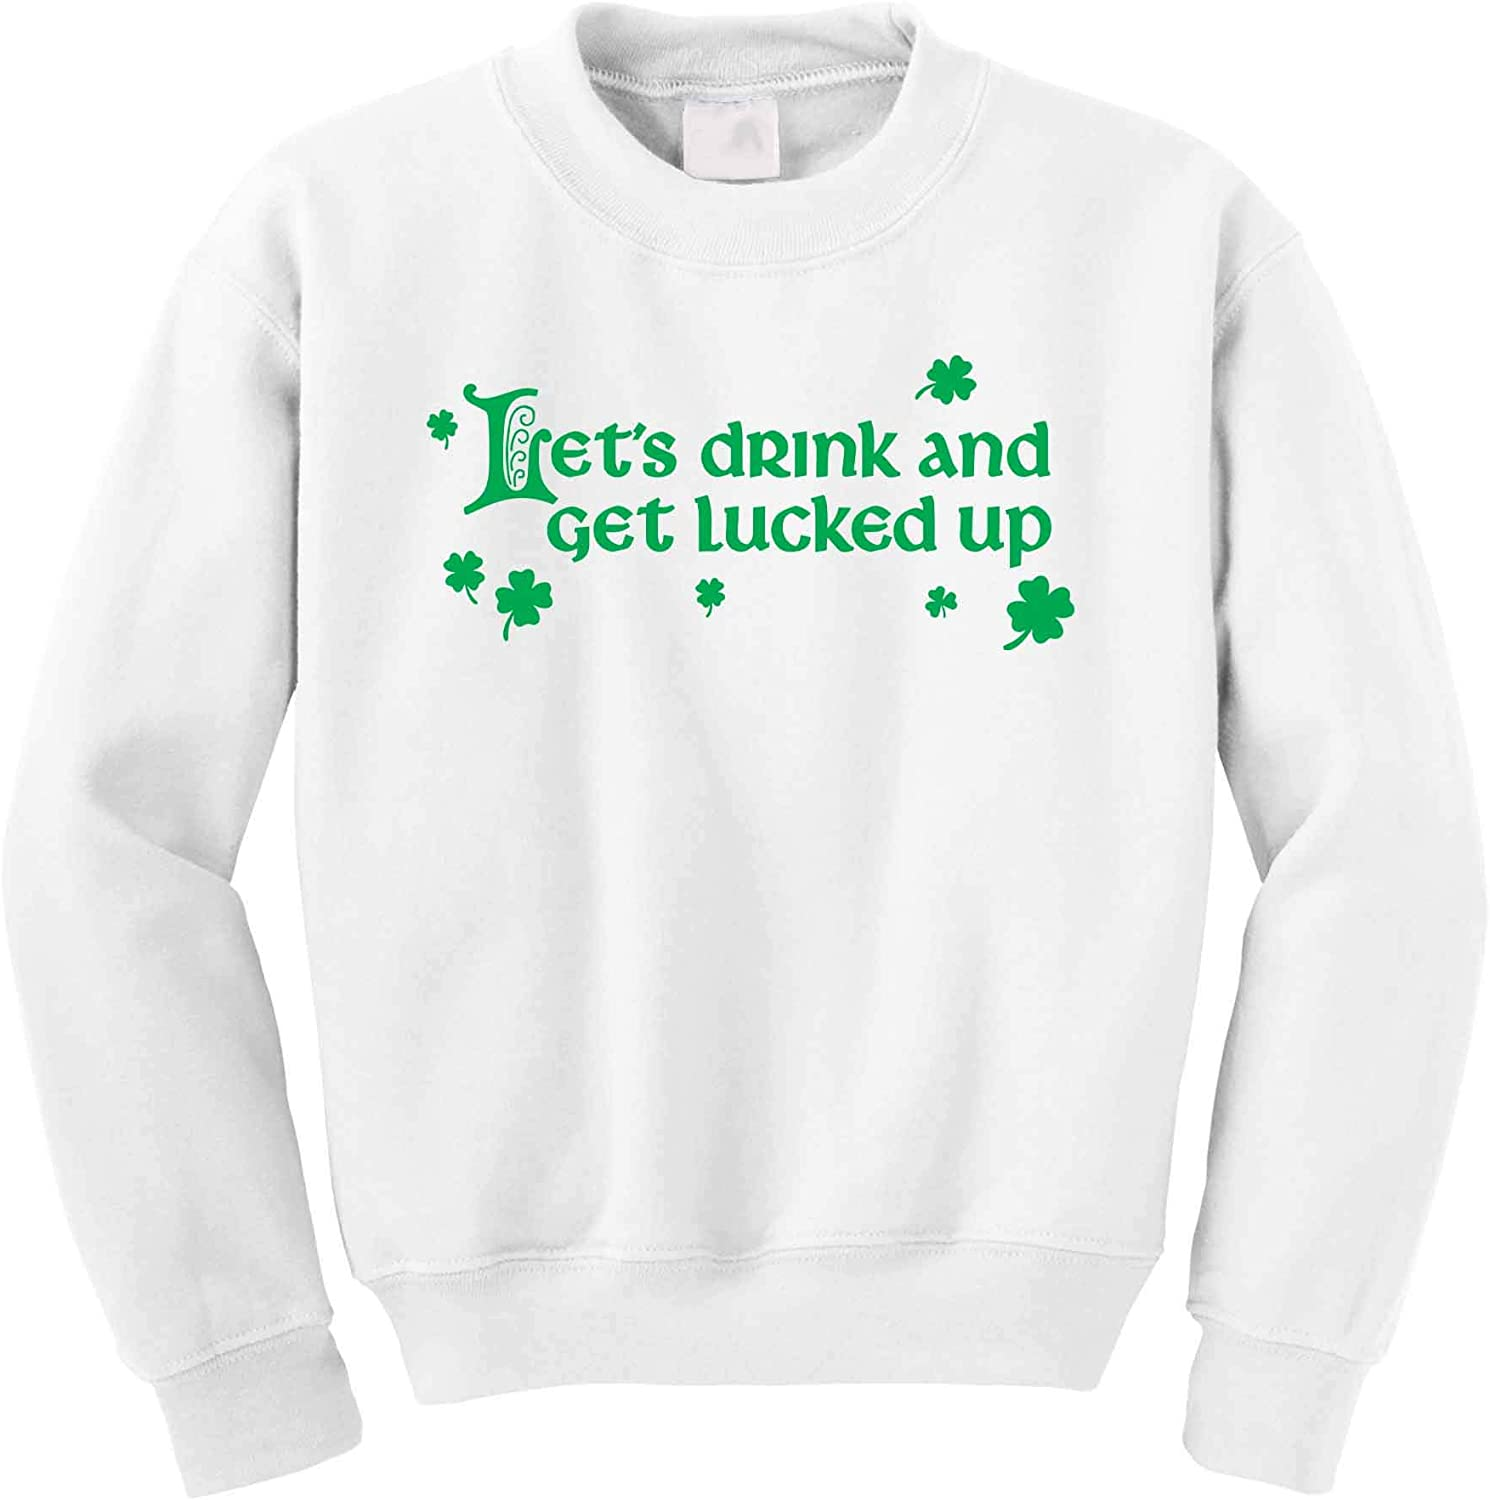 NuffSaid St Unisex Crew Patricks Day Lets Drink and Get Lucked Up Crewneck Sweatshirt